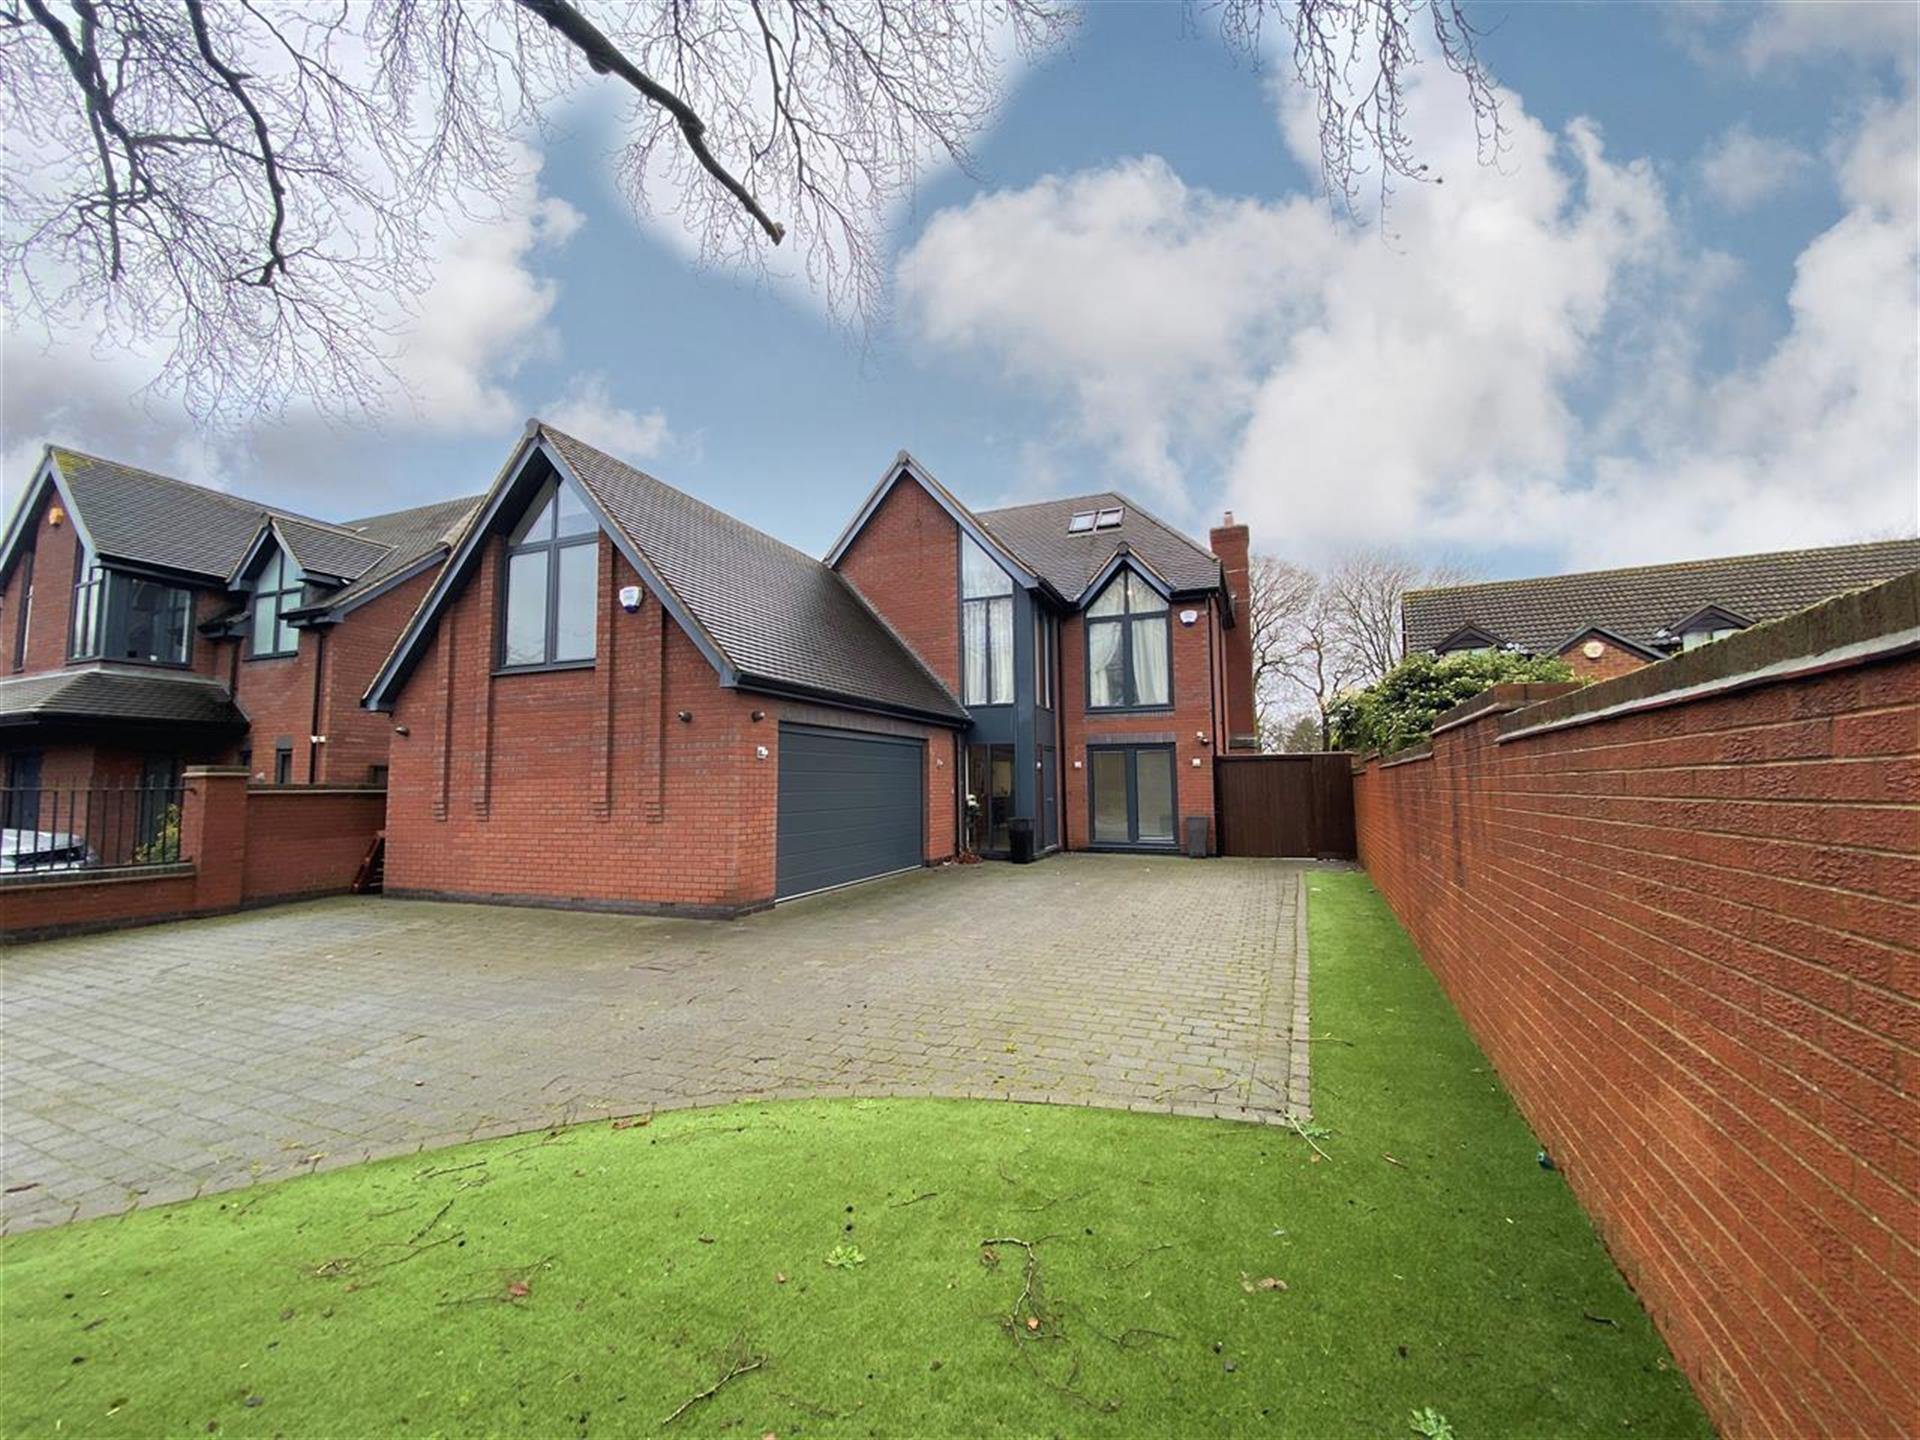 6 Bedroom Detached House For Sale - Main Picture